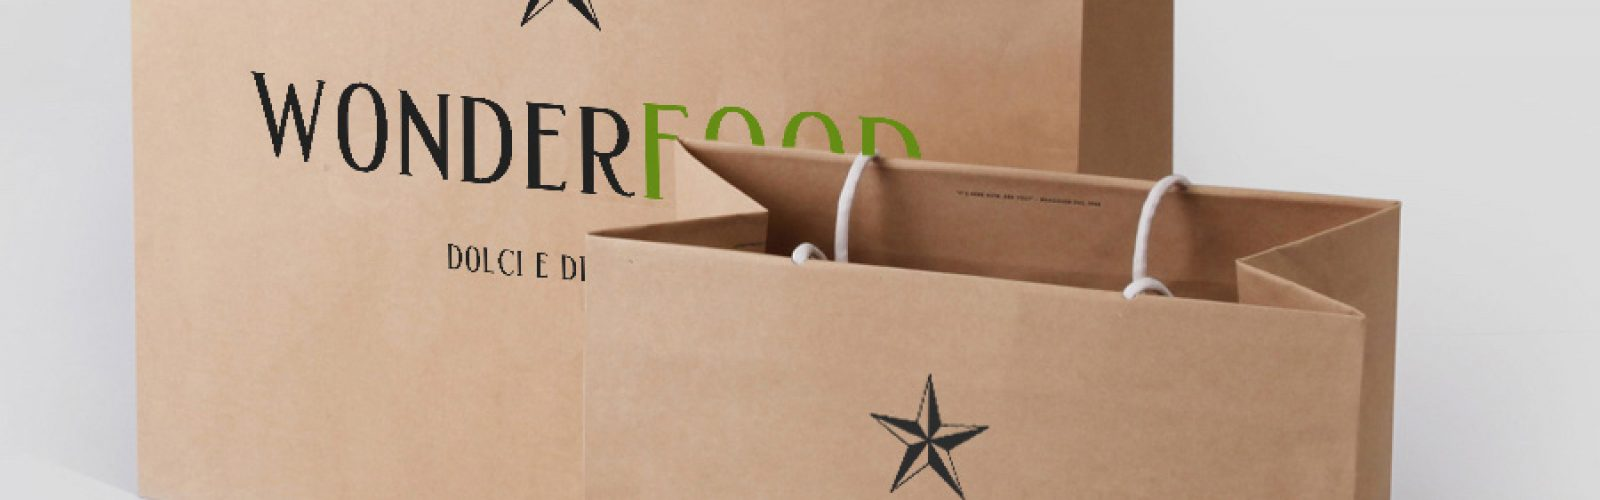 packaging-wonderfood-grafica-meloghraphic-studio